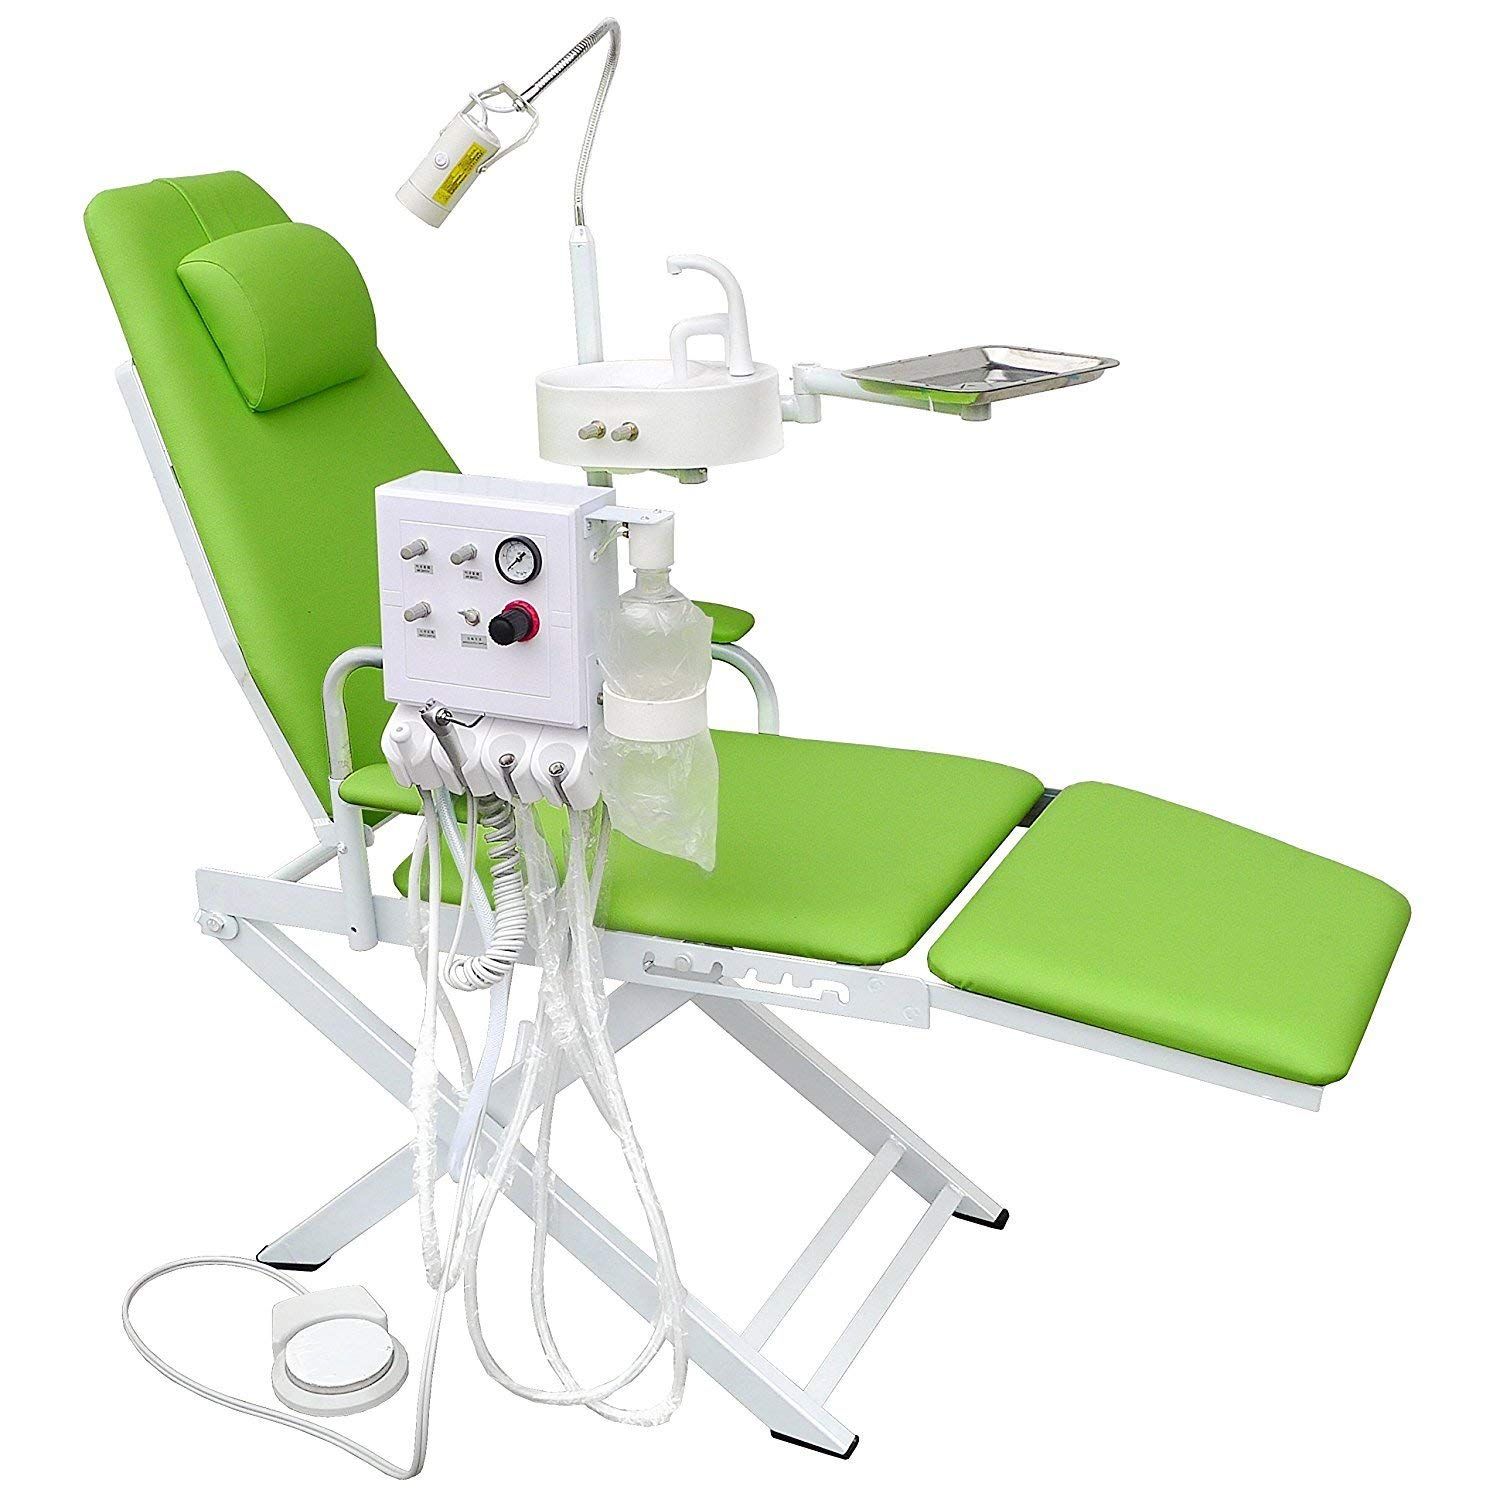 NSKI Portable Folding Chair Mobile Unit+5W LED Surgical Light Lamp+Waste Basin+Water System Supply (2H,Apple Green)